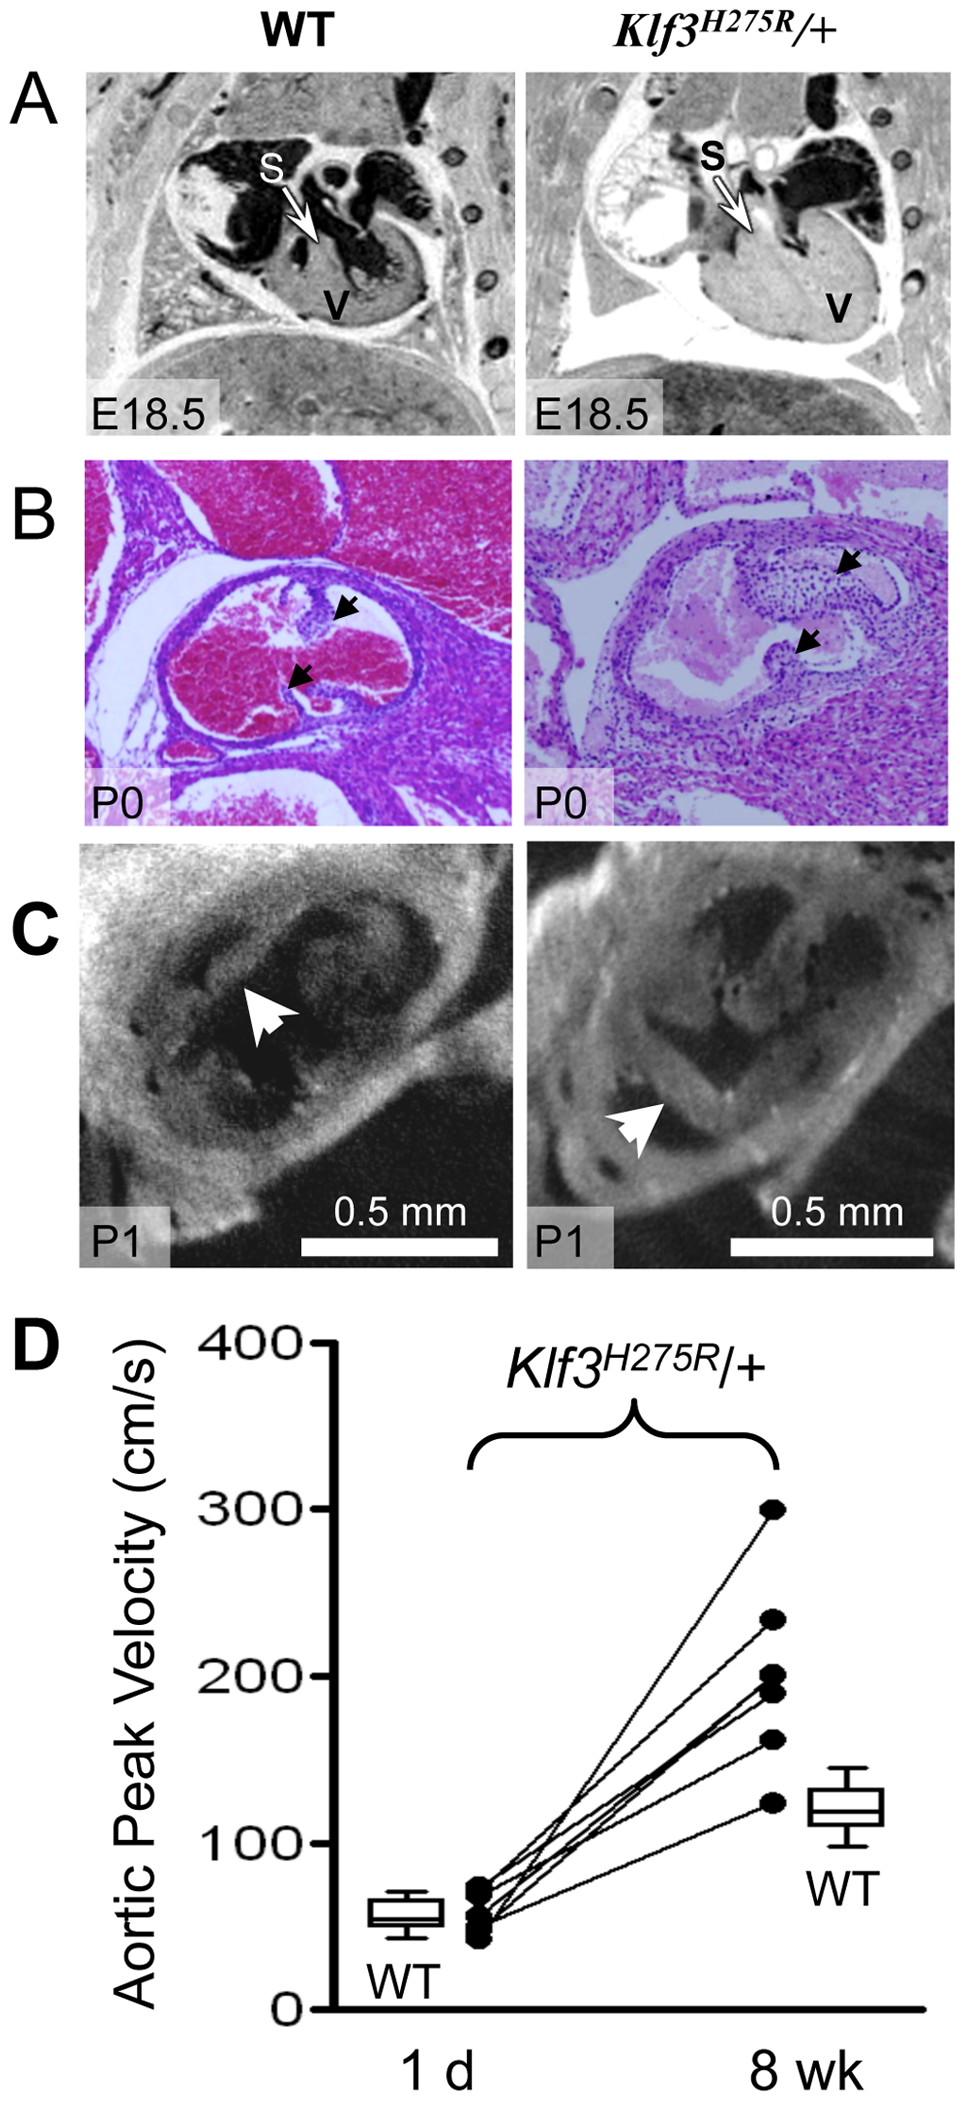 Abnormal hearts and aortic valves in <i>Klf3</i><sup>H275R</sup>/+ neonates.